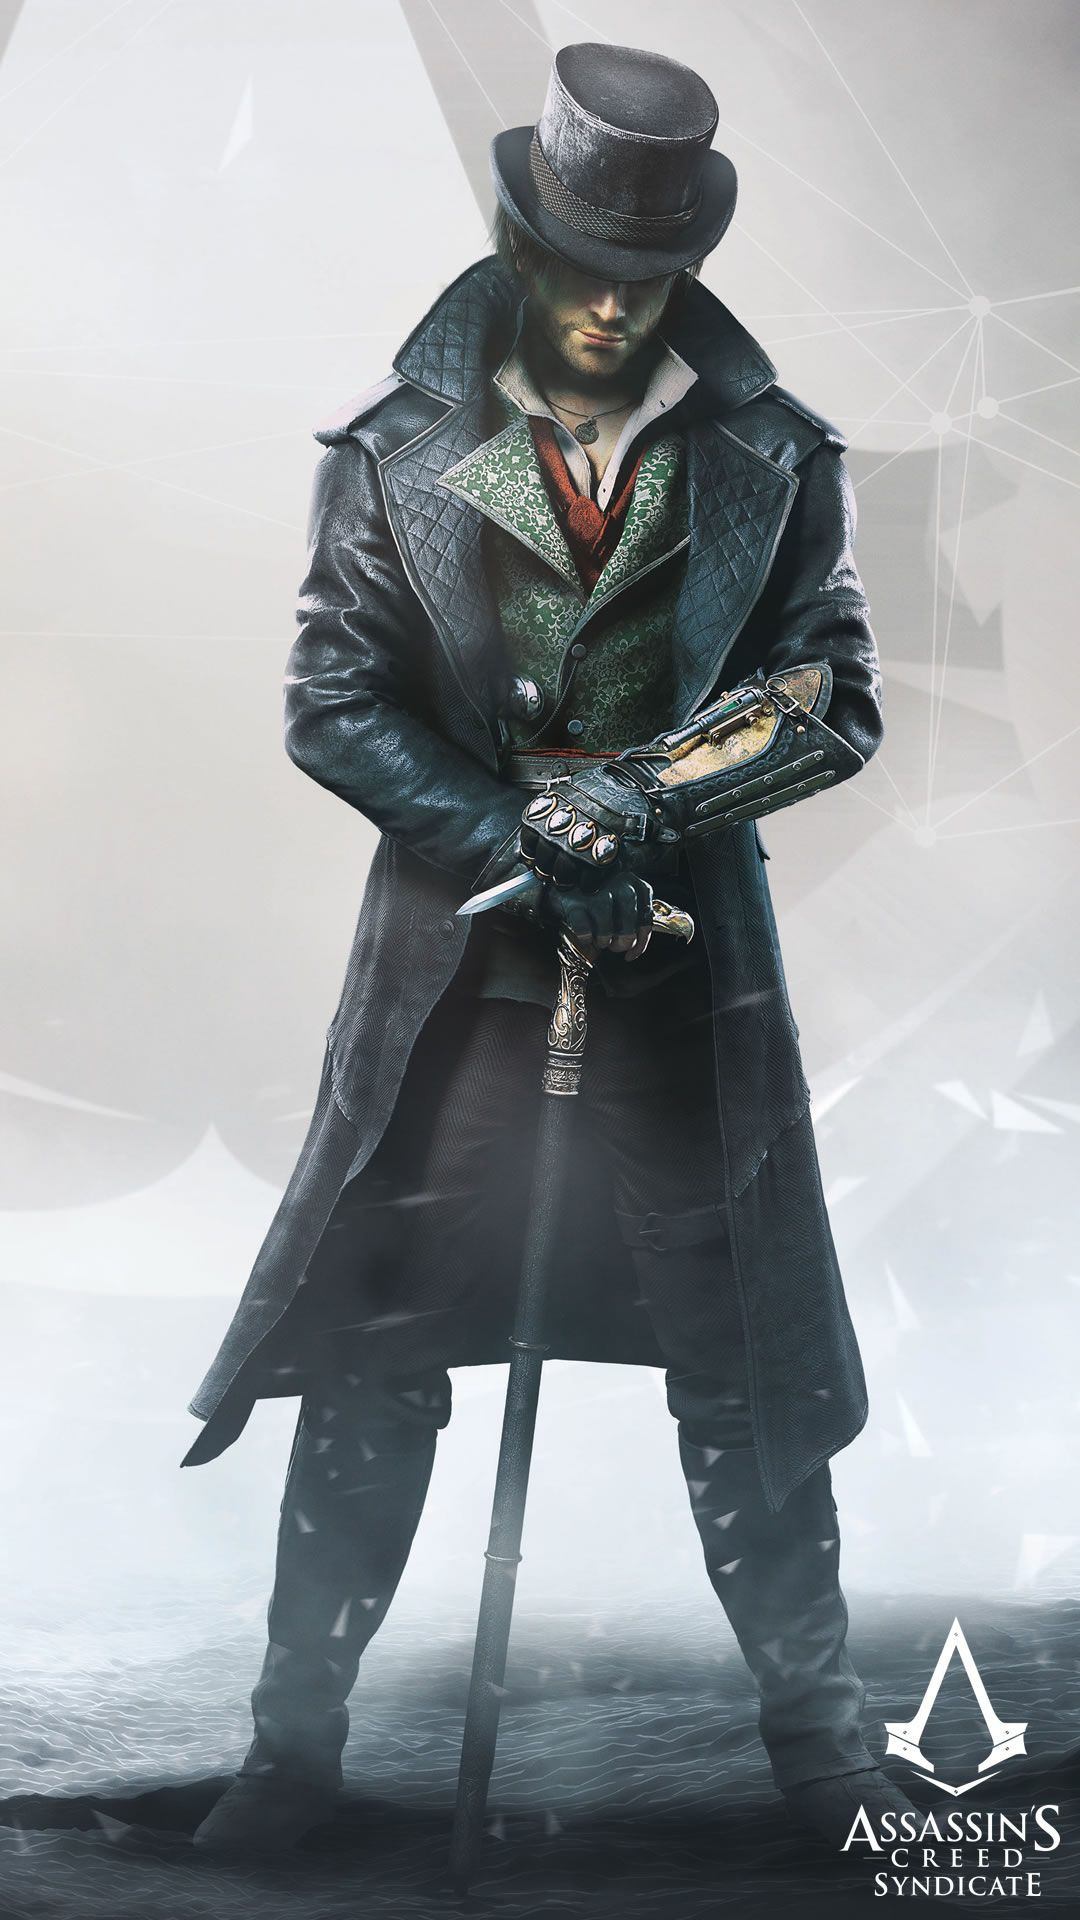 Meet Jacob Frye One Of The Two Playable Character S In Assassin S Creed Syndicate Alongside His Twin S Assassins Creed Assassins Creed Jacob Assassin S Creed